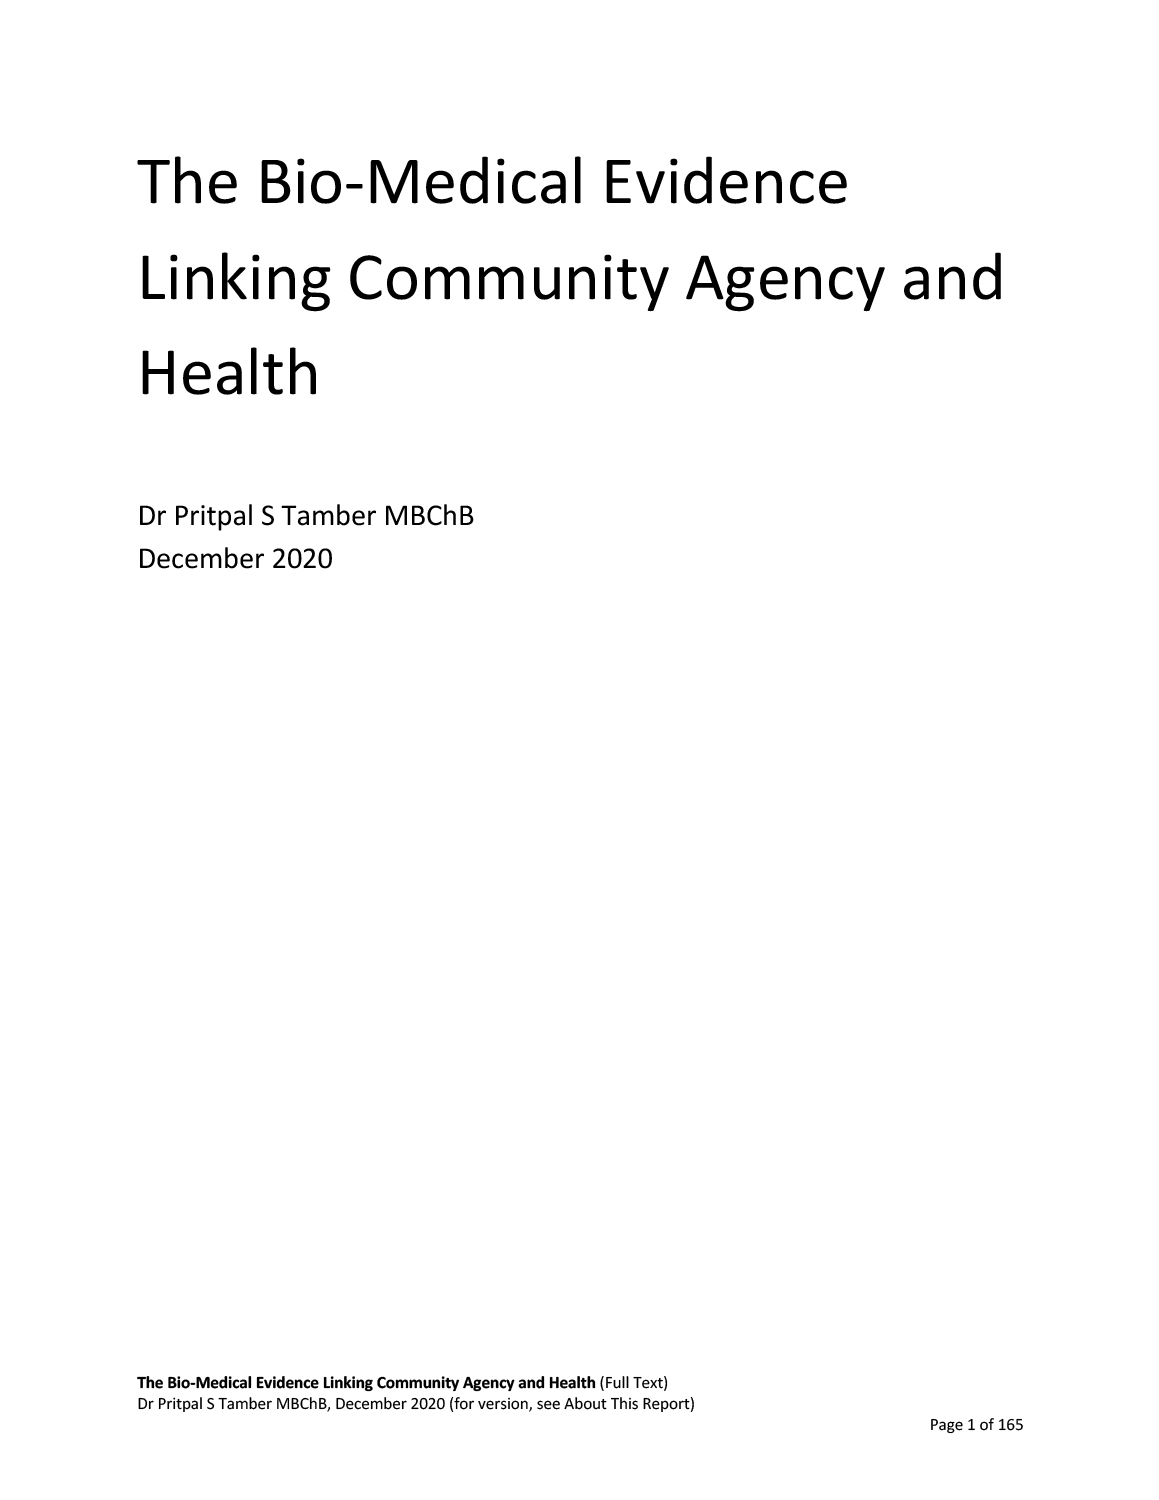 ThBio-Medical Evidence Linking Community Agency and Health